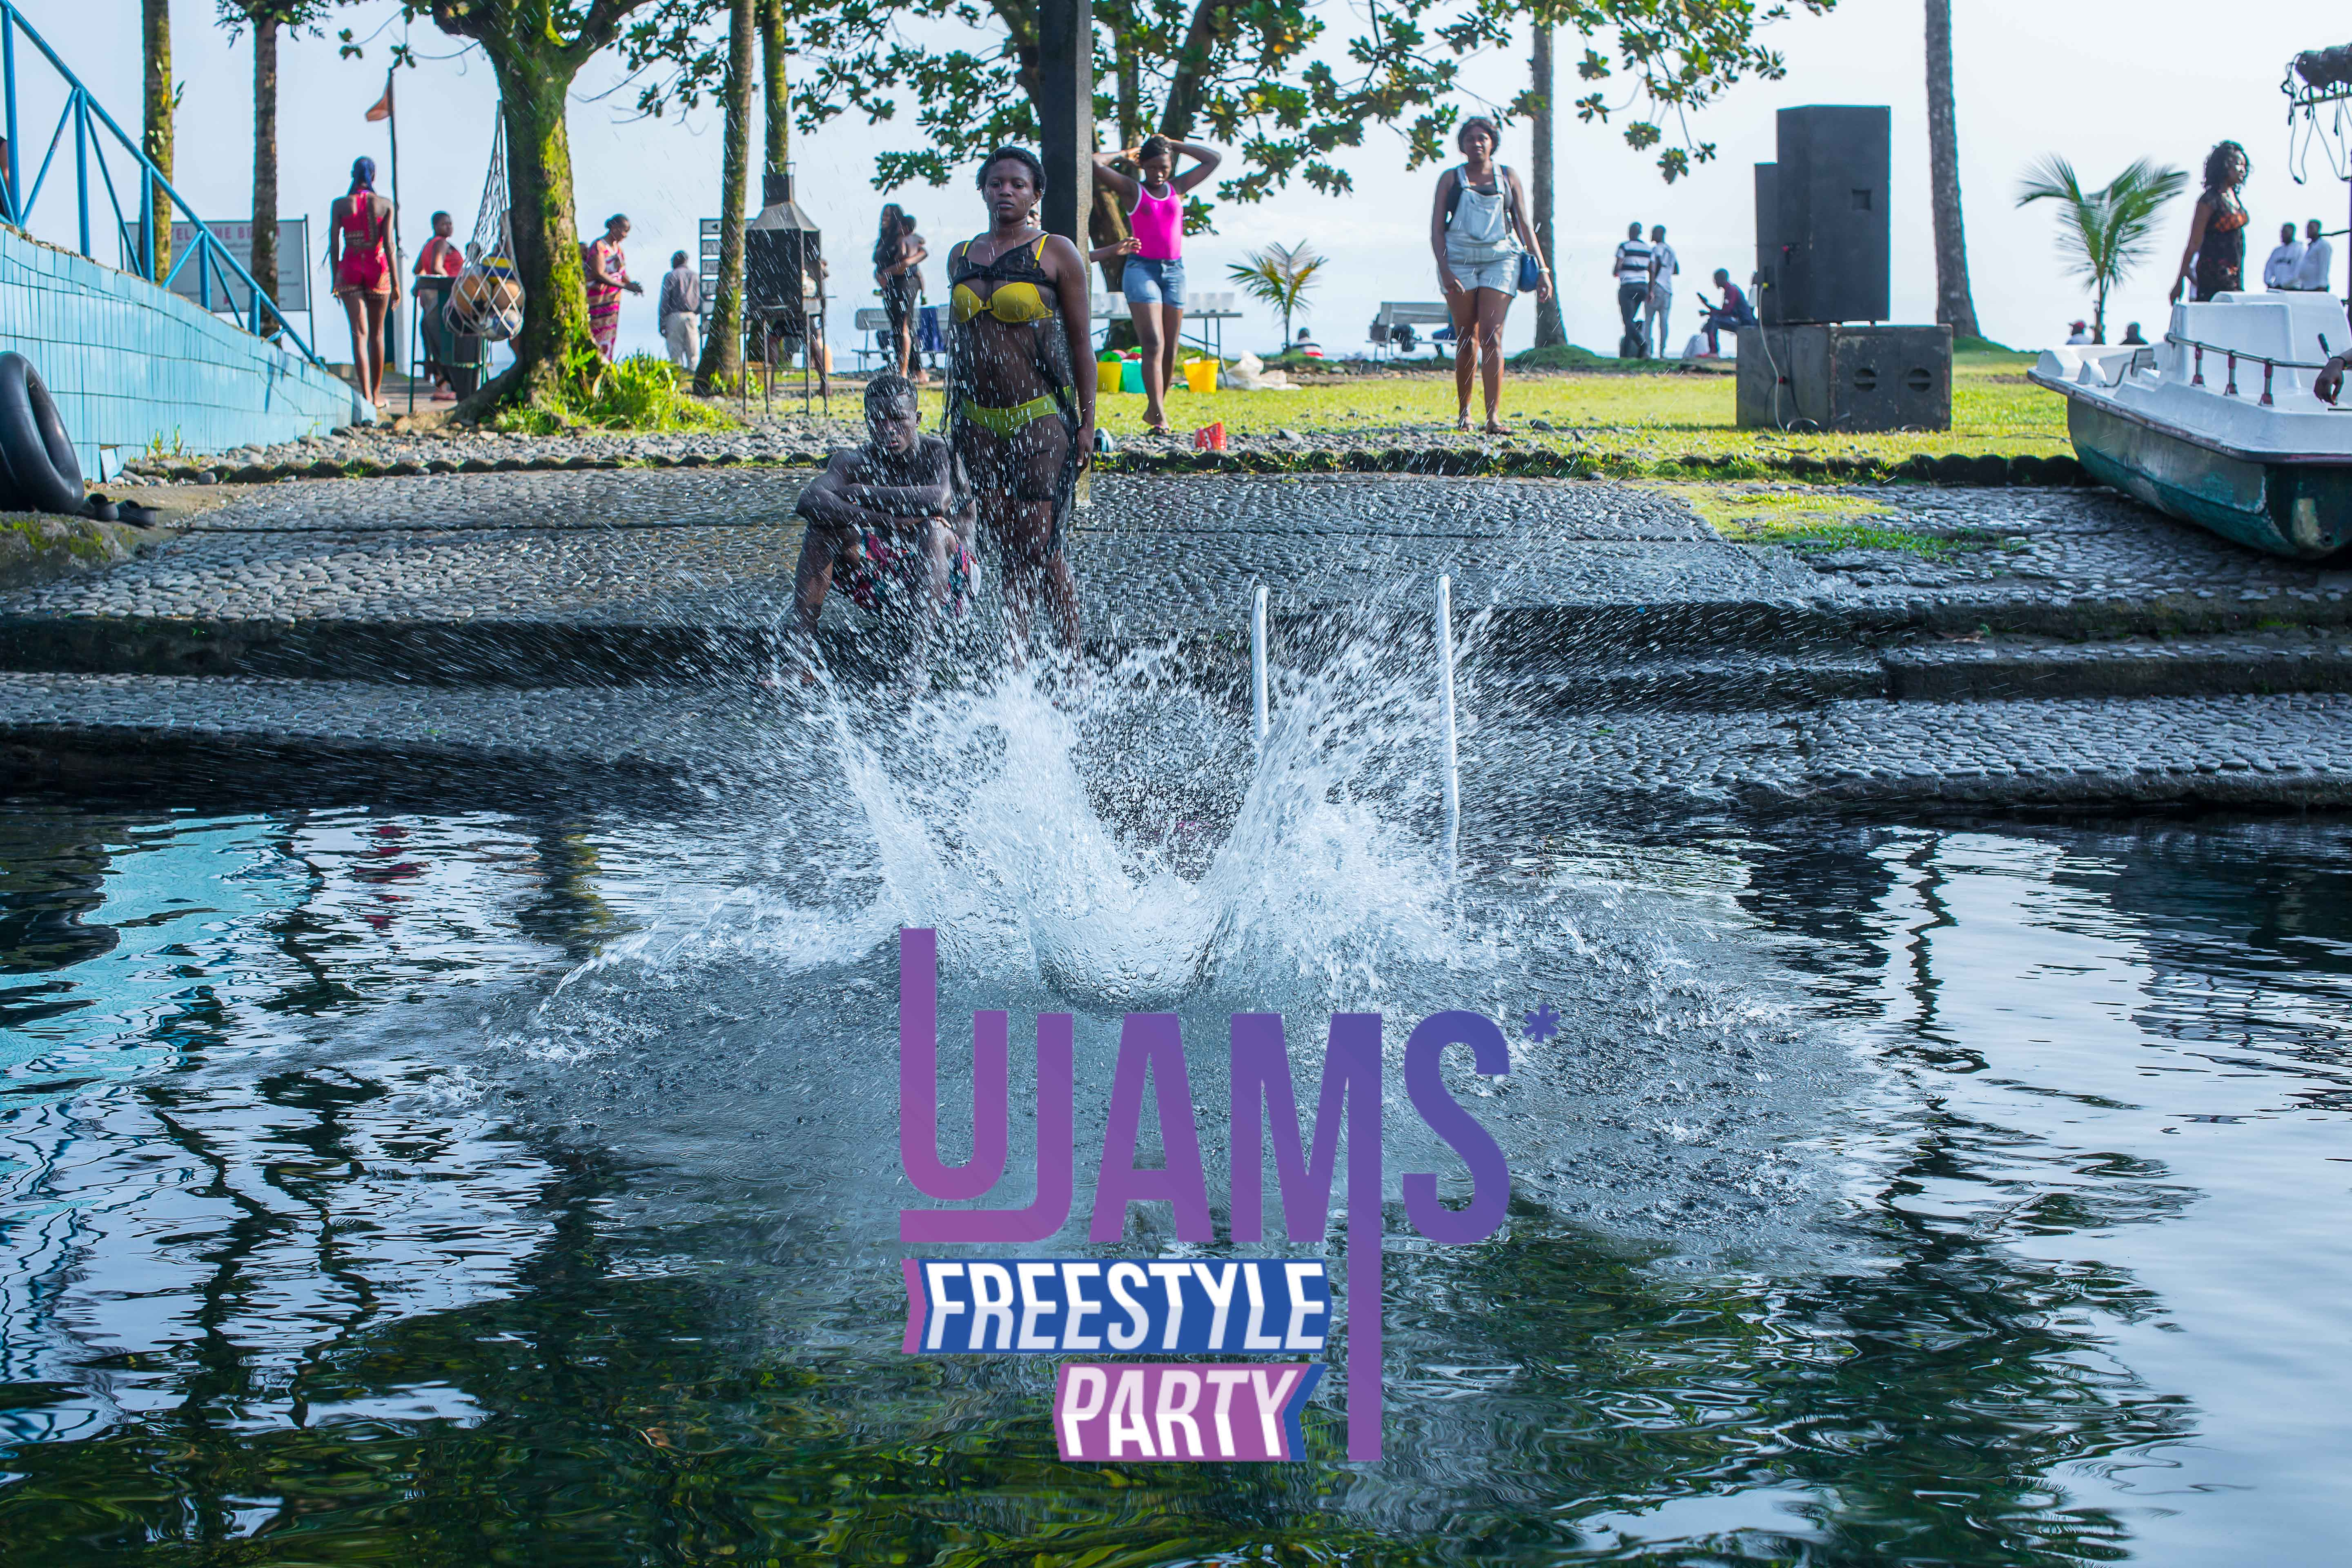 ujams freestyle party